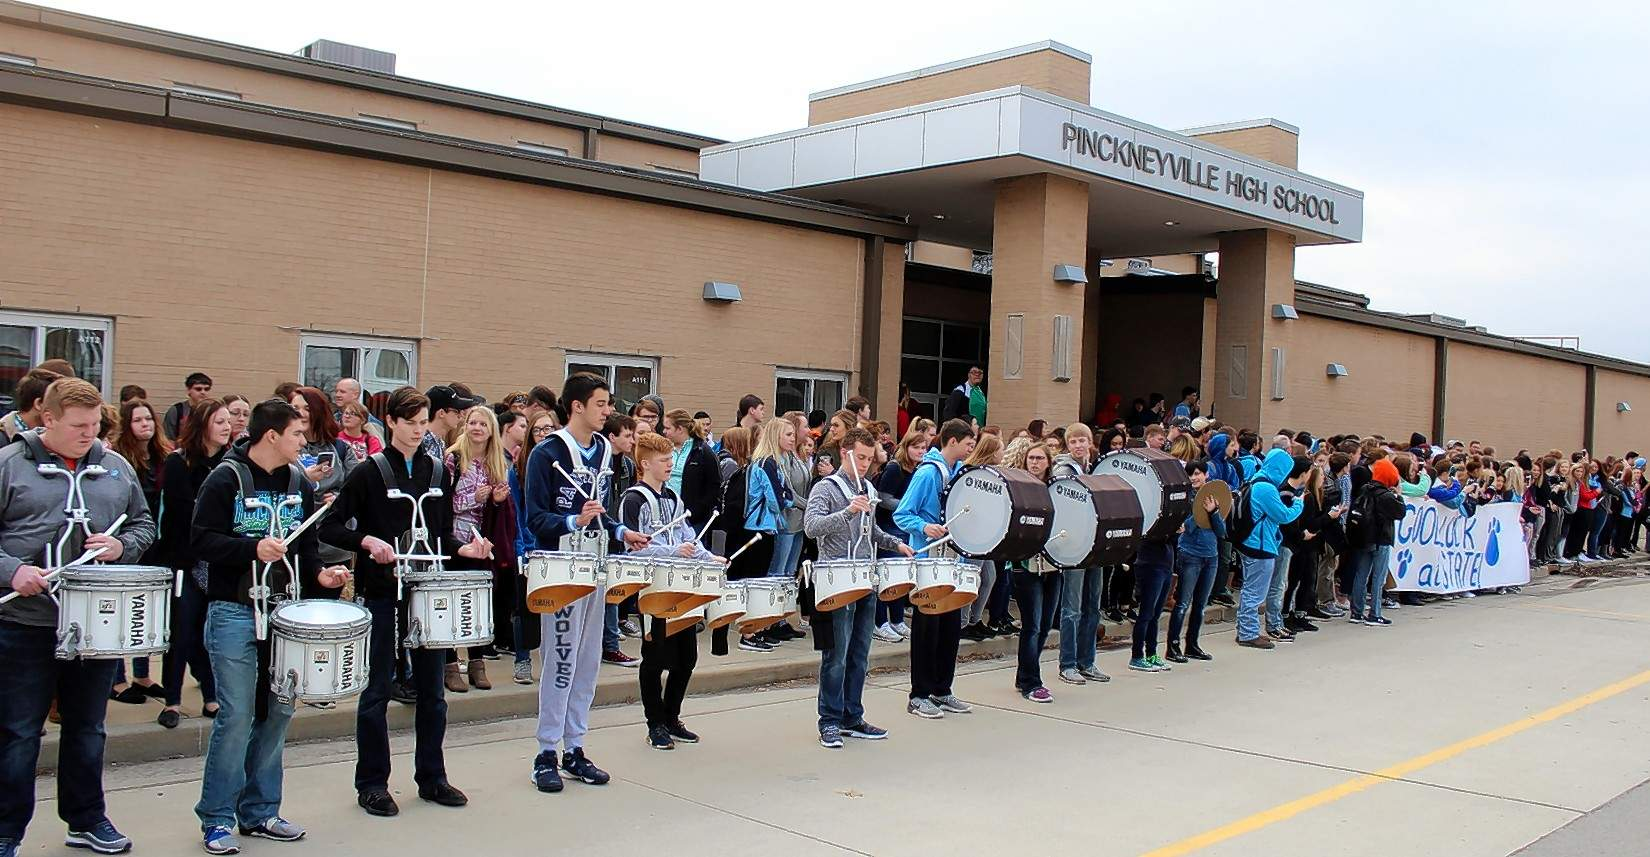 The PCHS drum line provides the beat for the rally.